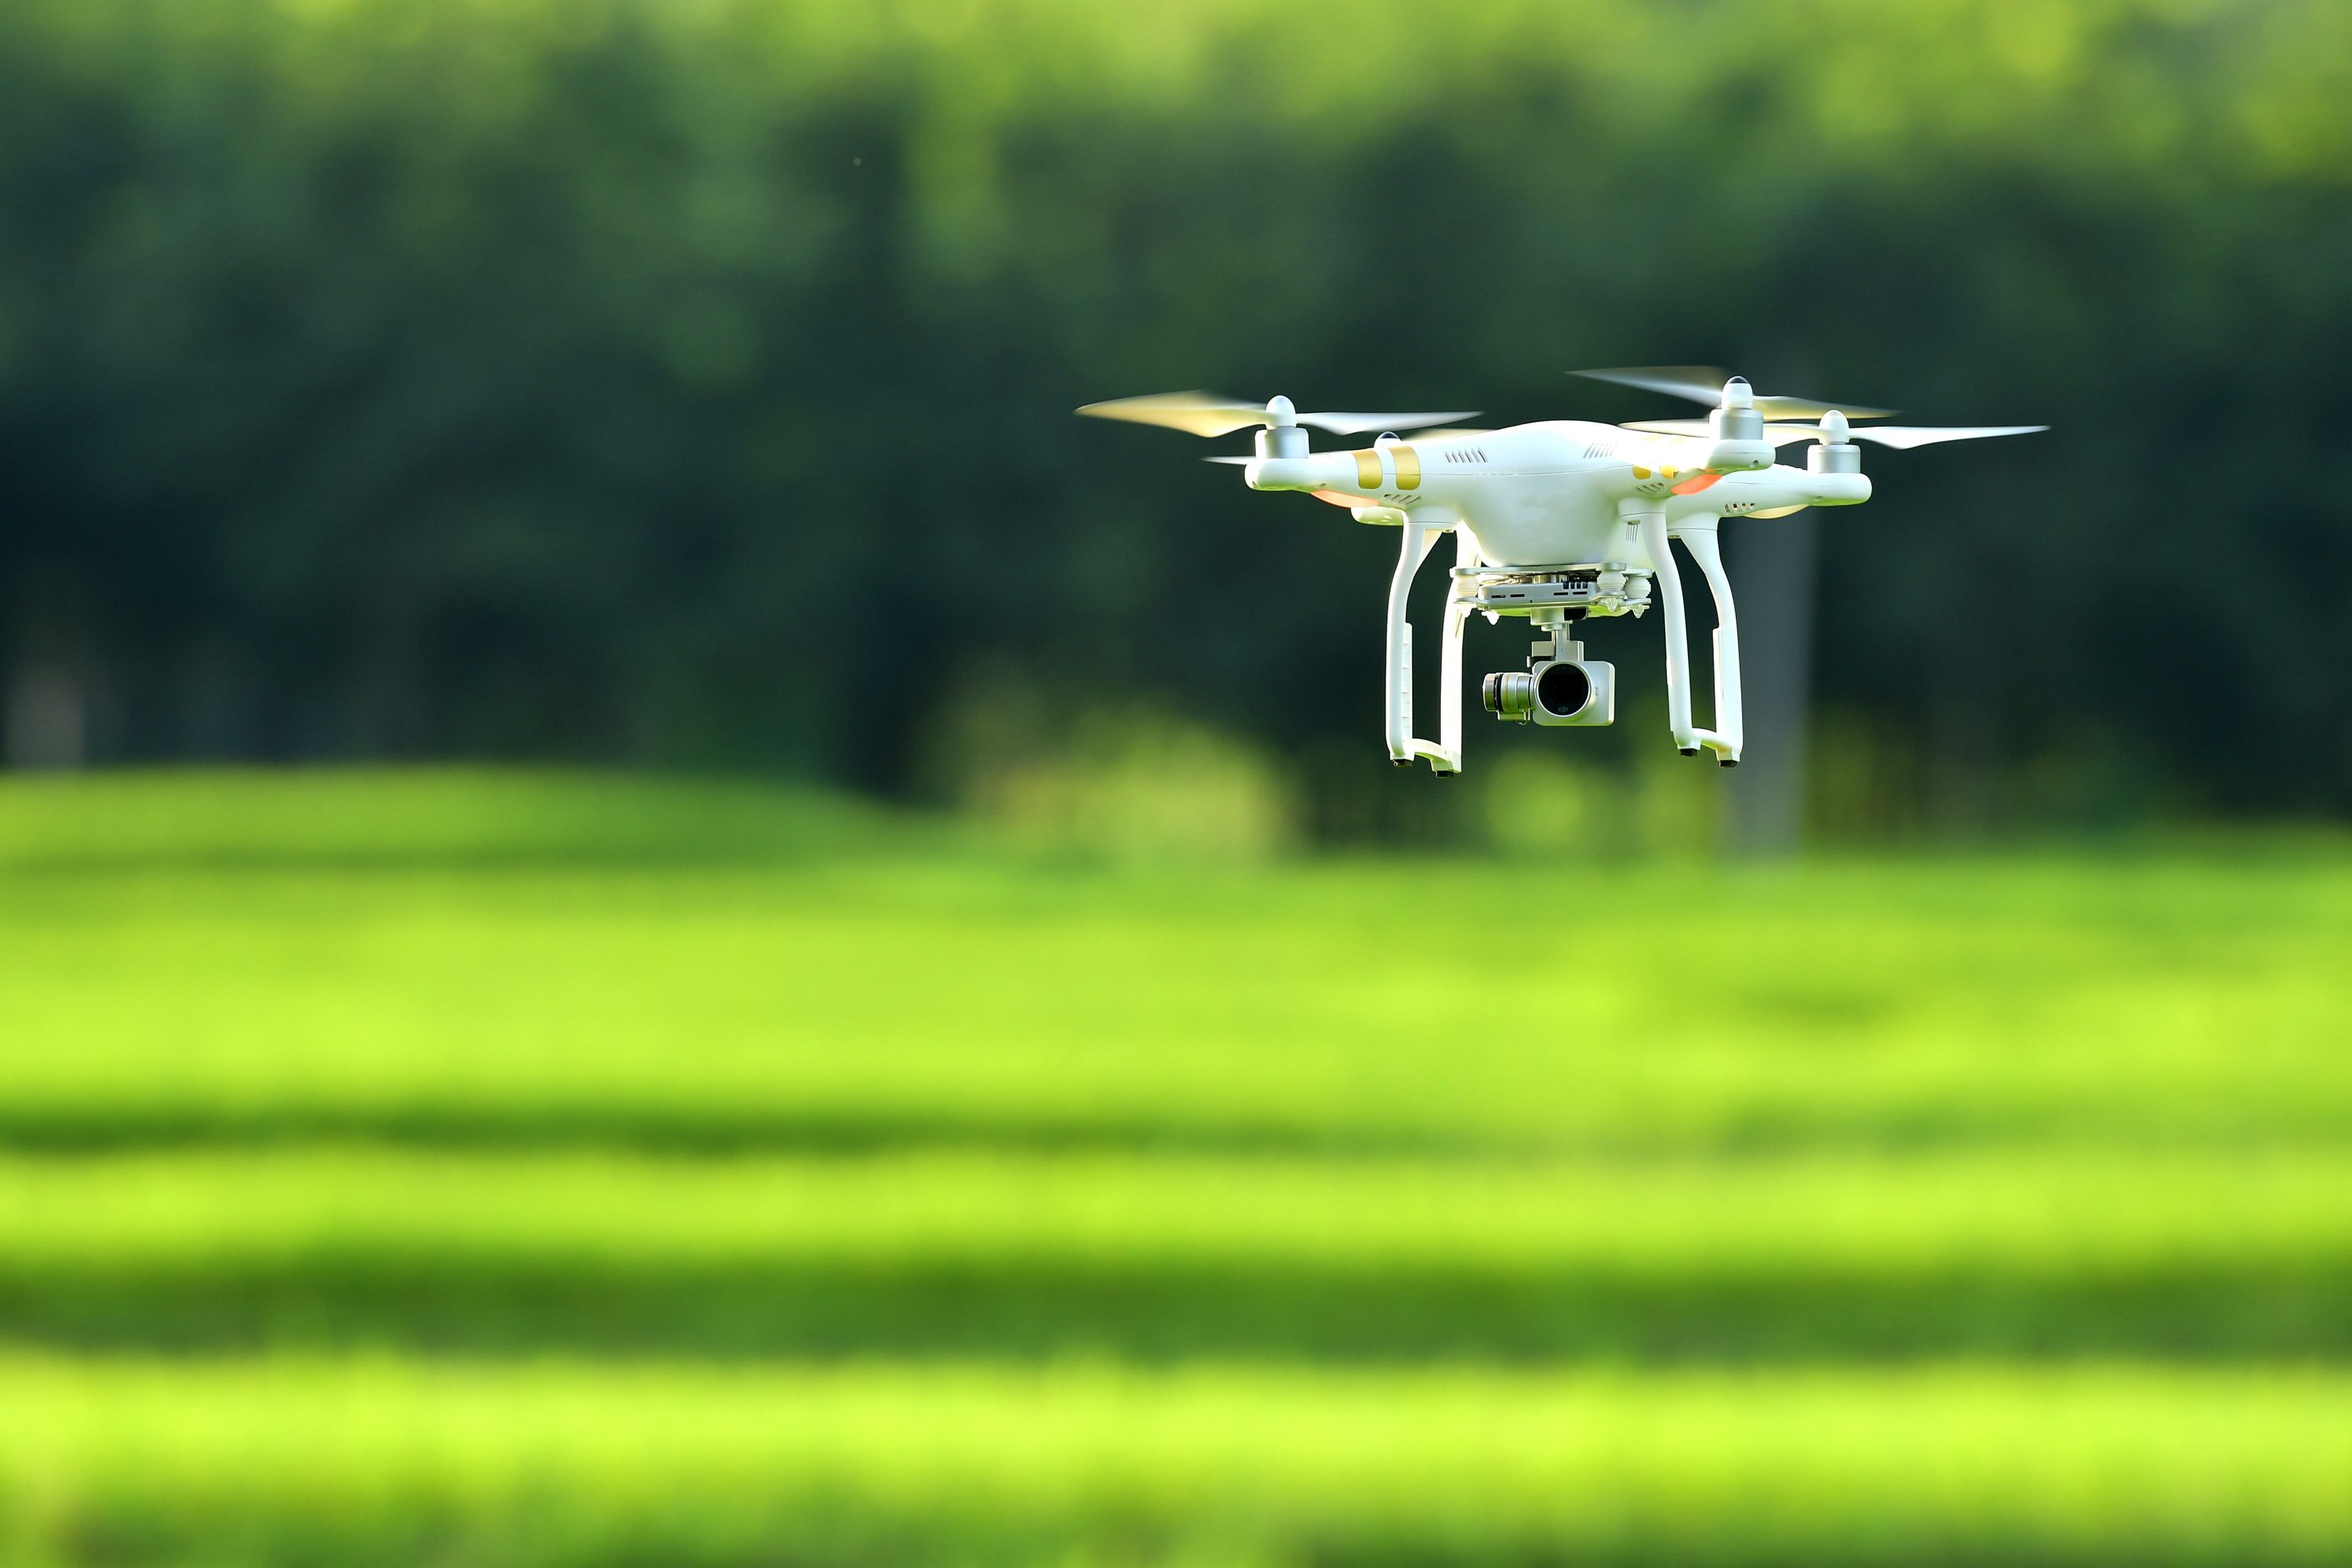 How This SkillsFuture Credit-Eligible Drone Training Increases Employability - Alvinology